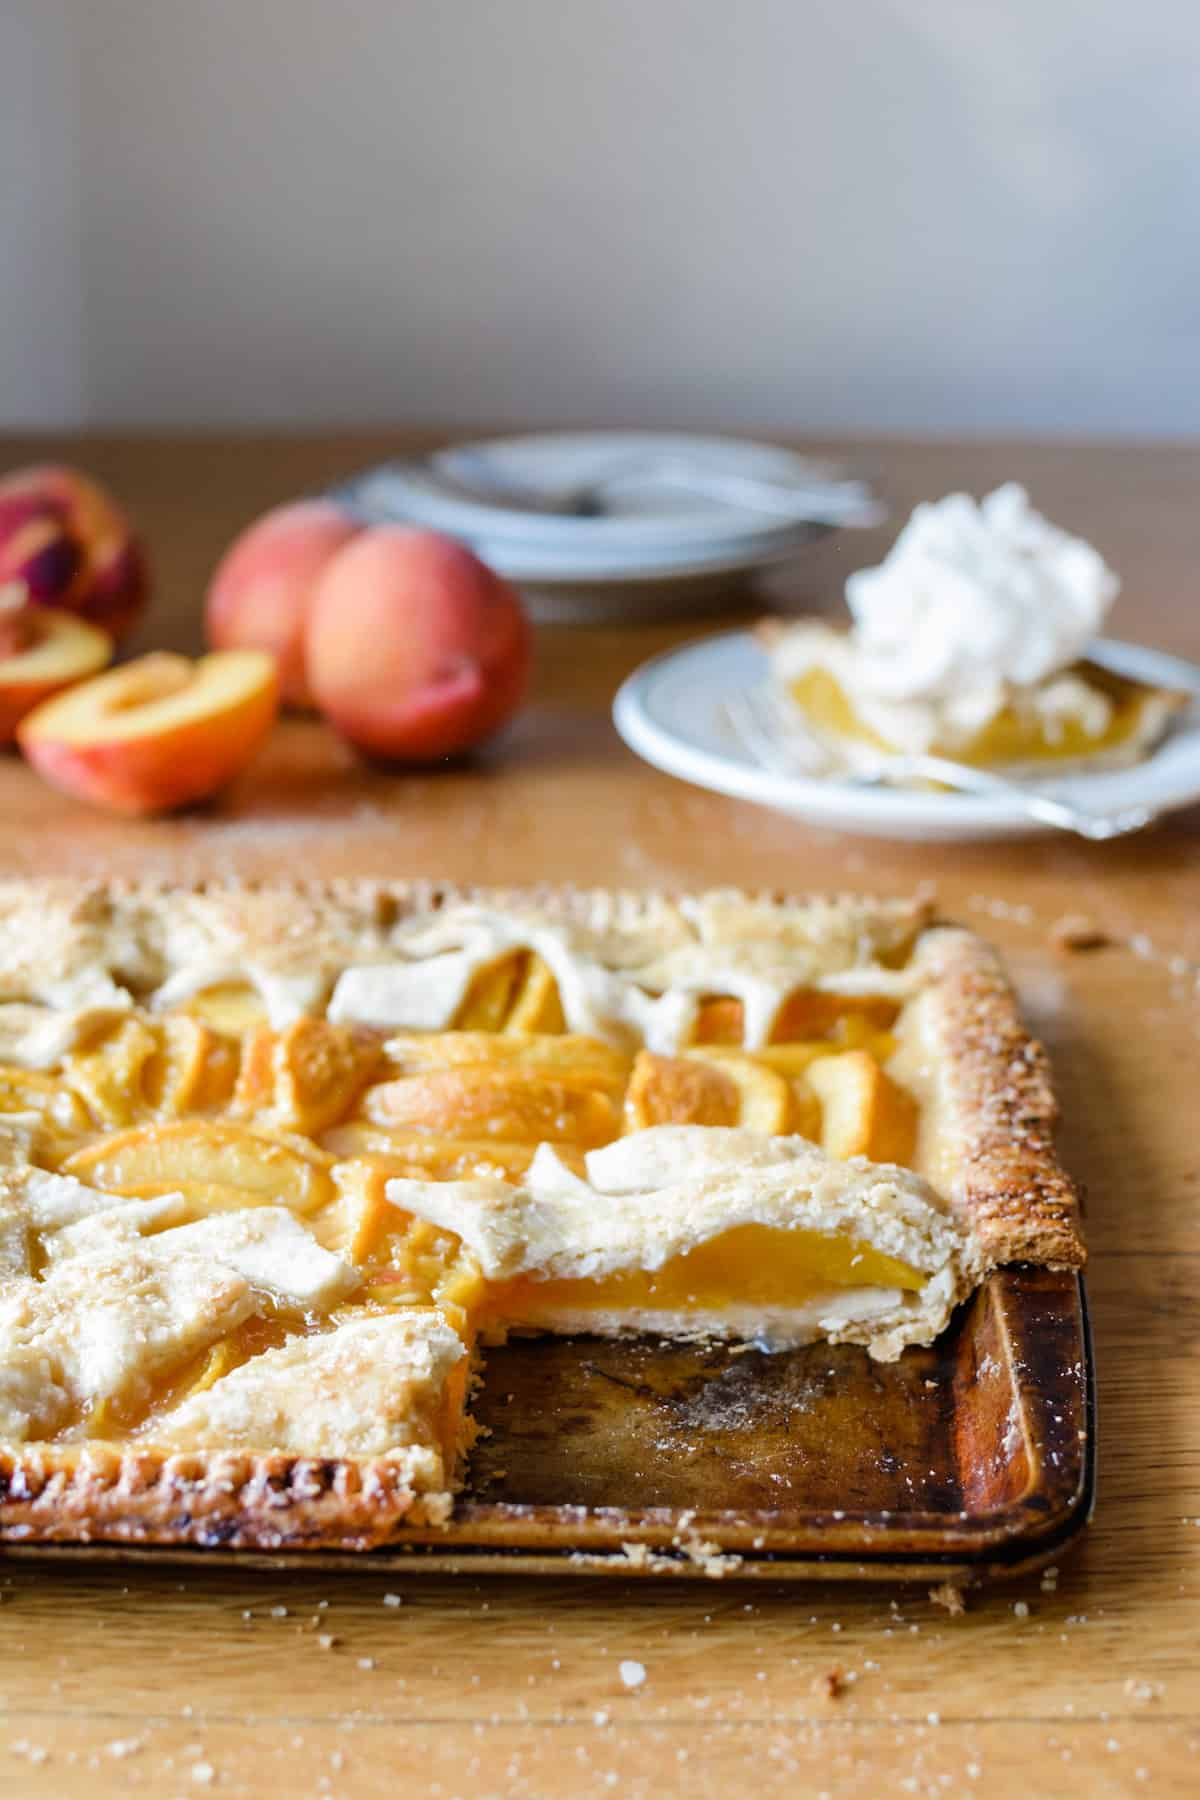 Peach pie with a piece missing sitting on a wooden table with a piece on a plate in the background.